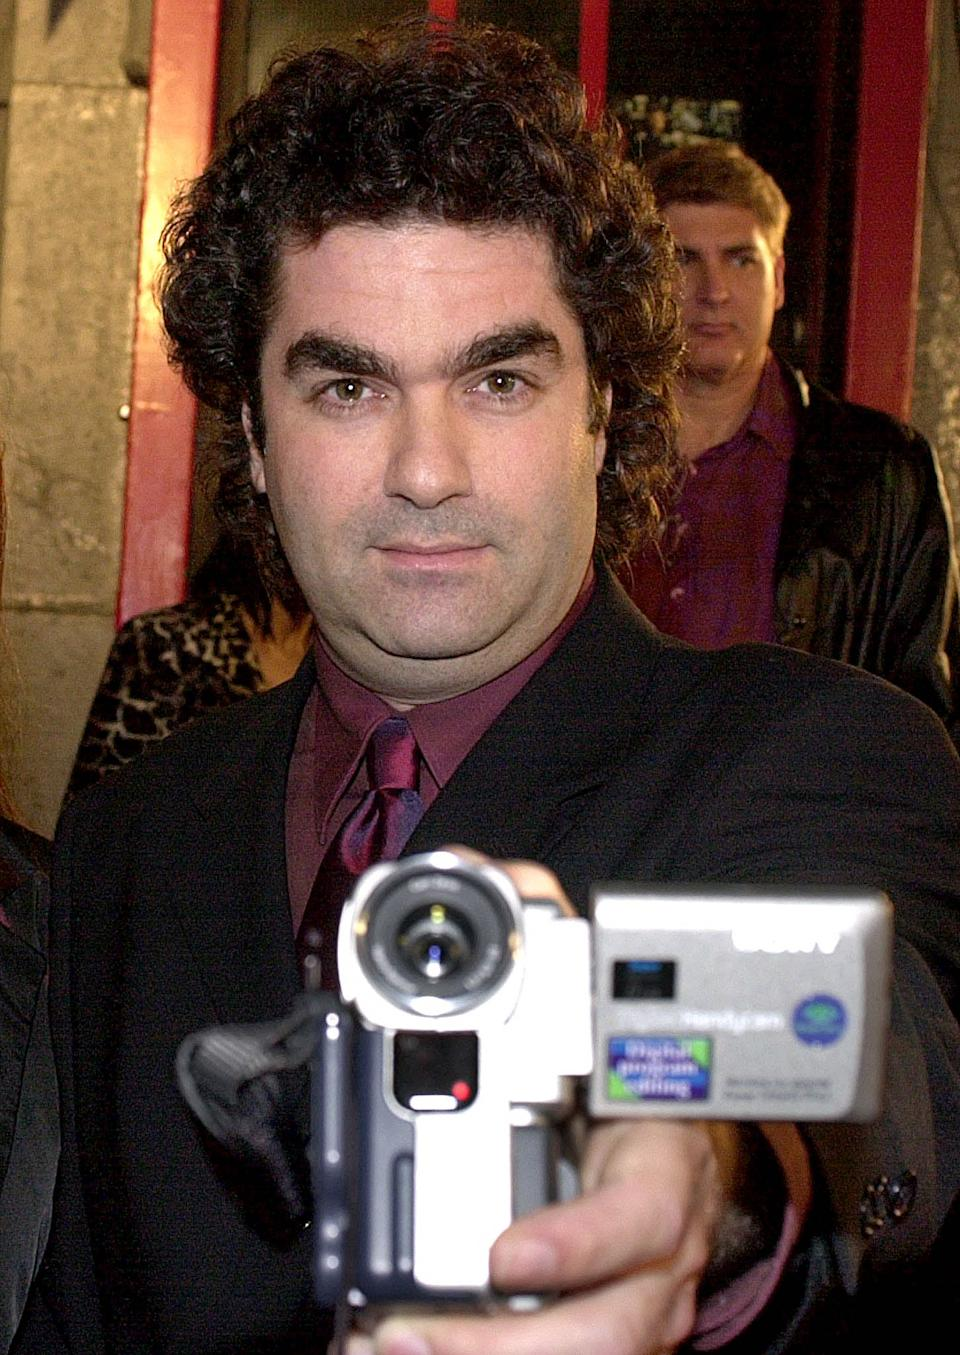 """Joe Berlinger films the media as he arrives at the premiere of """"Blair Witch 2"""", in Hollywood, 23 October 2000. (AFP Photo/Lucy Nicholson via Getty Images)"""